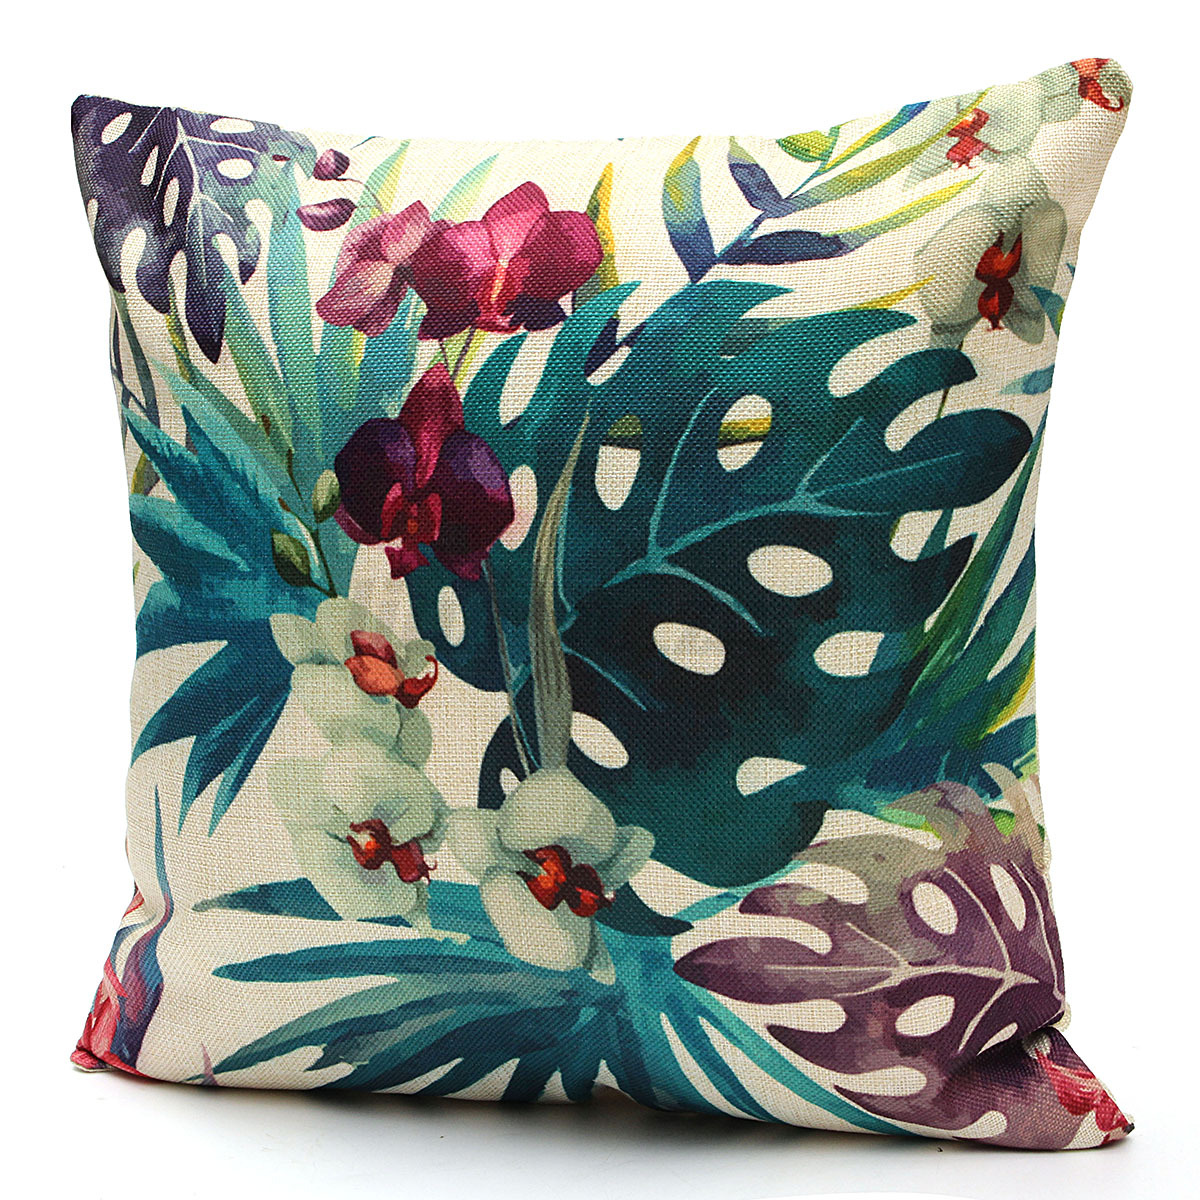 tropical sofa slipcovers how to steam clean floral plant leaf cushion covers throw pillow